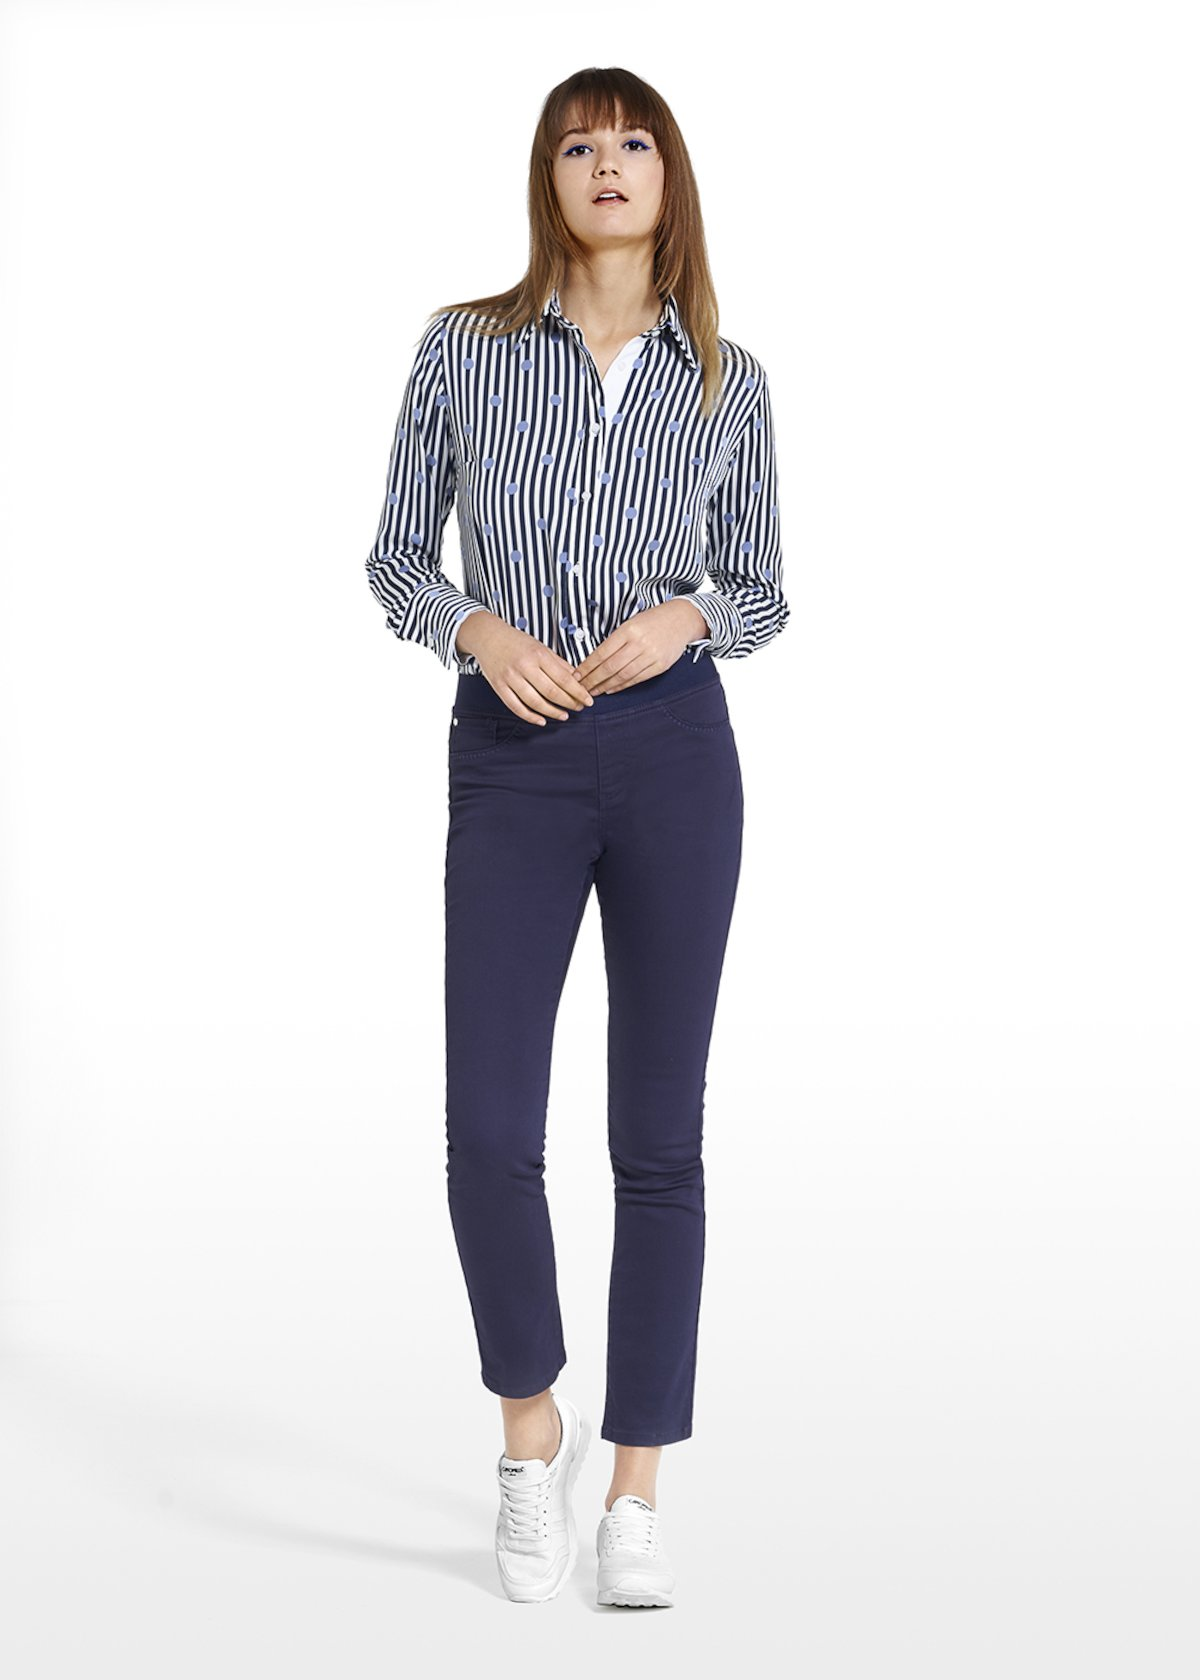 Pants Jeggins Daffy with knitted stitch around the pockets - Medium Blue - Woman - Category image